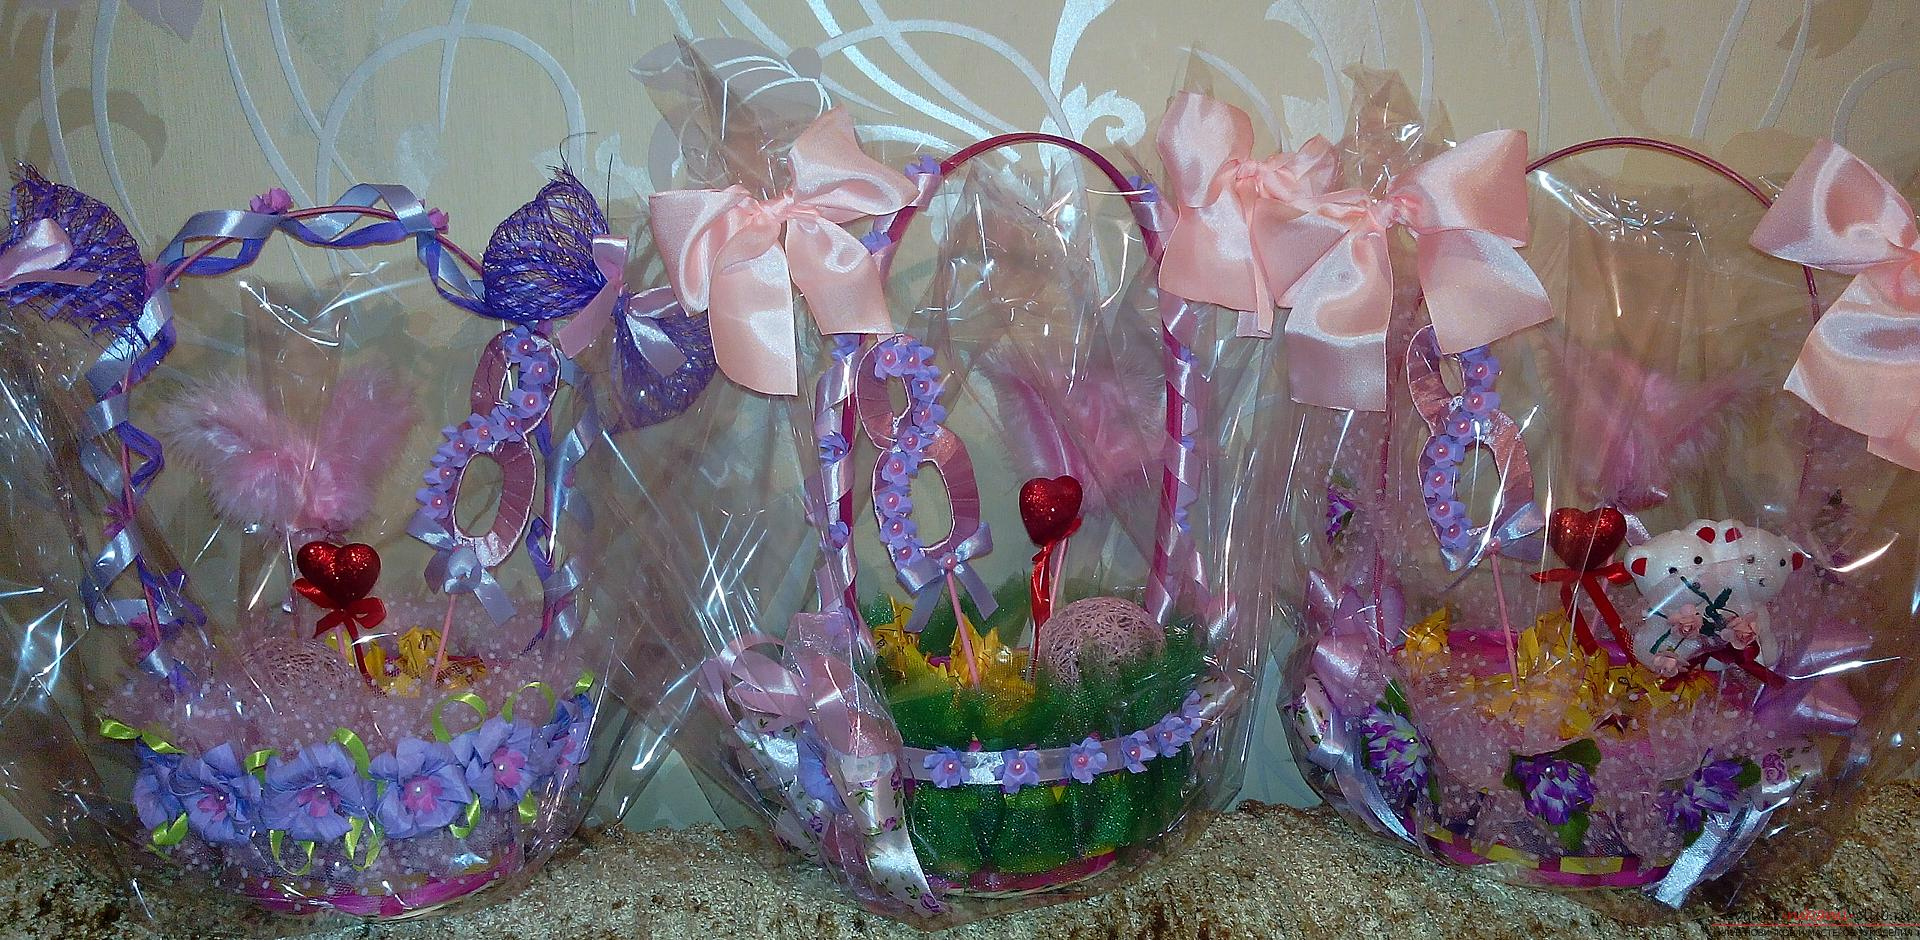 Baskets for a gift by March 8. Photo №1